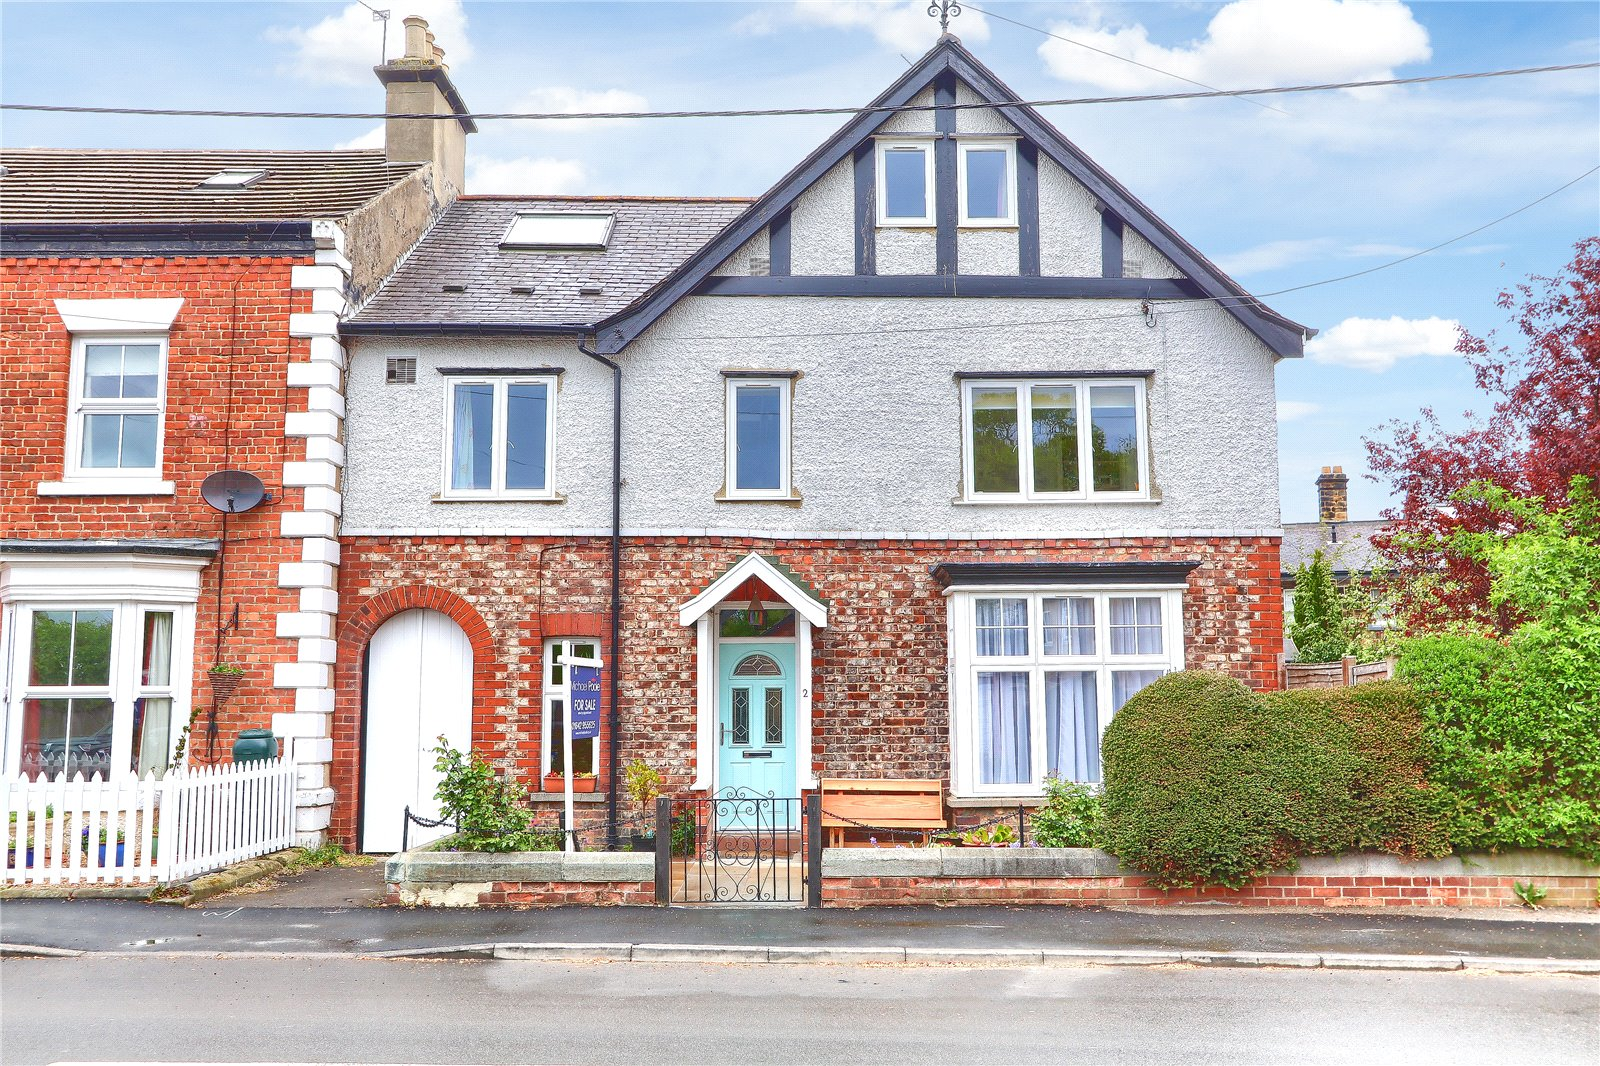 Properties for sale from Nunthorpe nch, Michael Poole. on